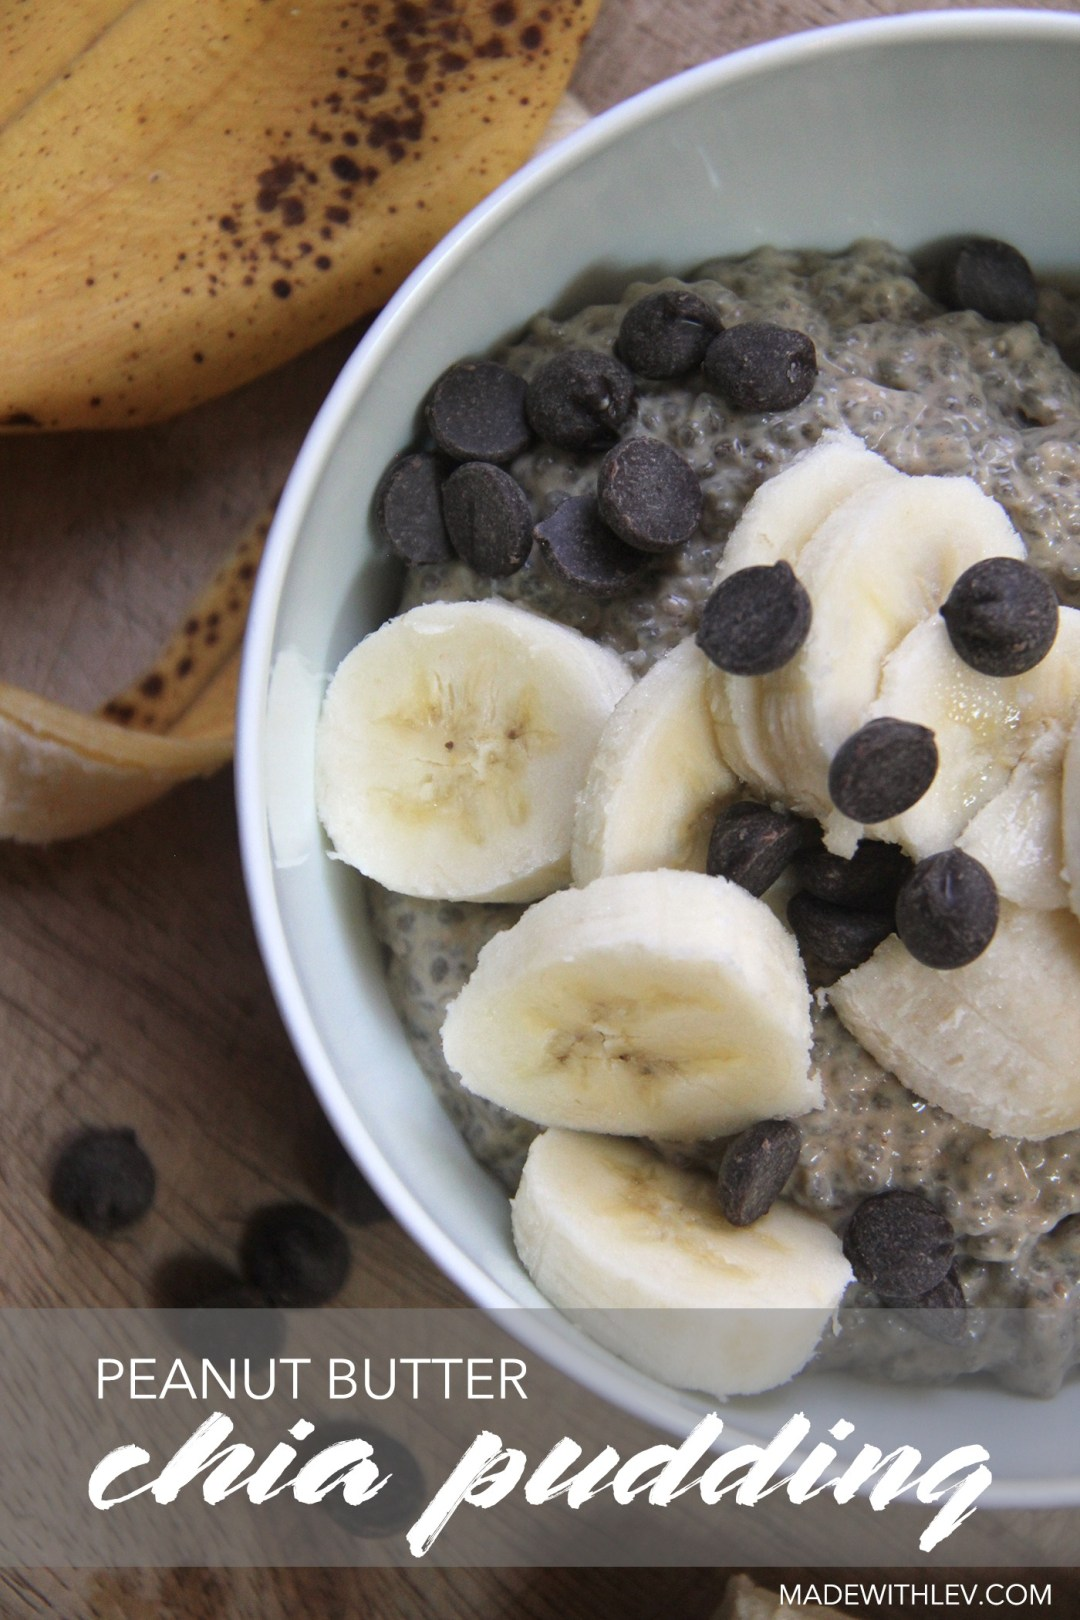 Peanut Butter Chia Pudding // Satisfy those sweet cravings with this deliciously sweet and satisfying peanut butter chia pudding. Eat it for breakfast, grab it and go for a healthy snack, or savor it for dessert. It's sure to please whichever way you choose. #glutenfree #dairyfree #chiapudding